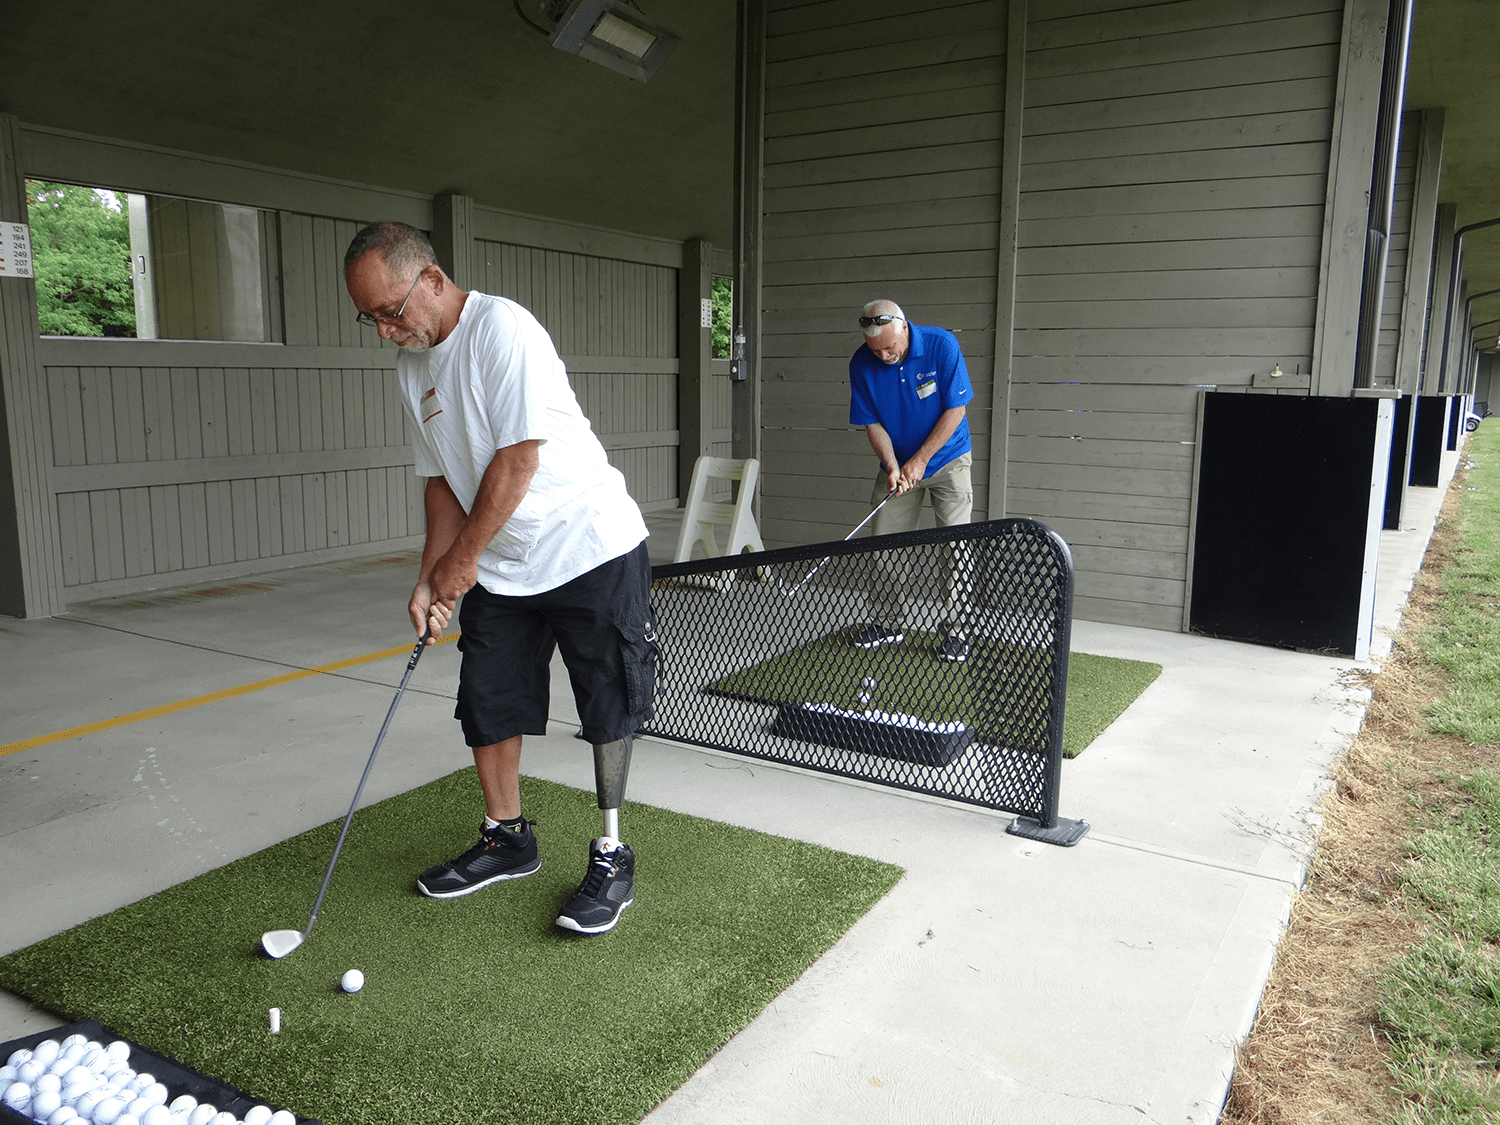 21st Annual Instructional Golf Clinic at Meadow Links Golf Course at Winton Woods